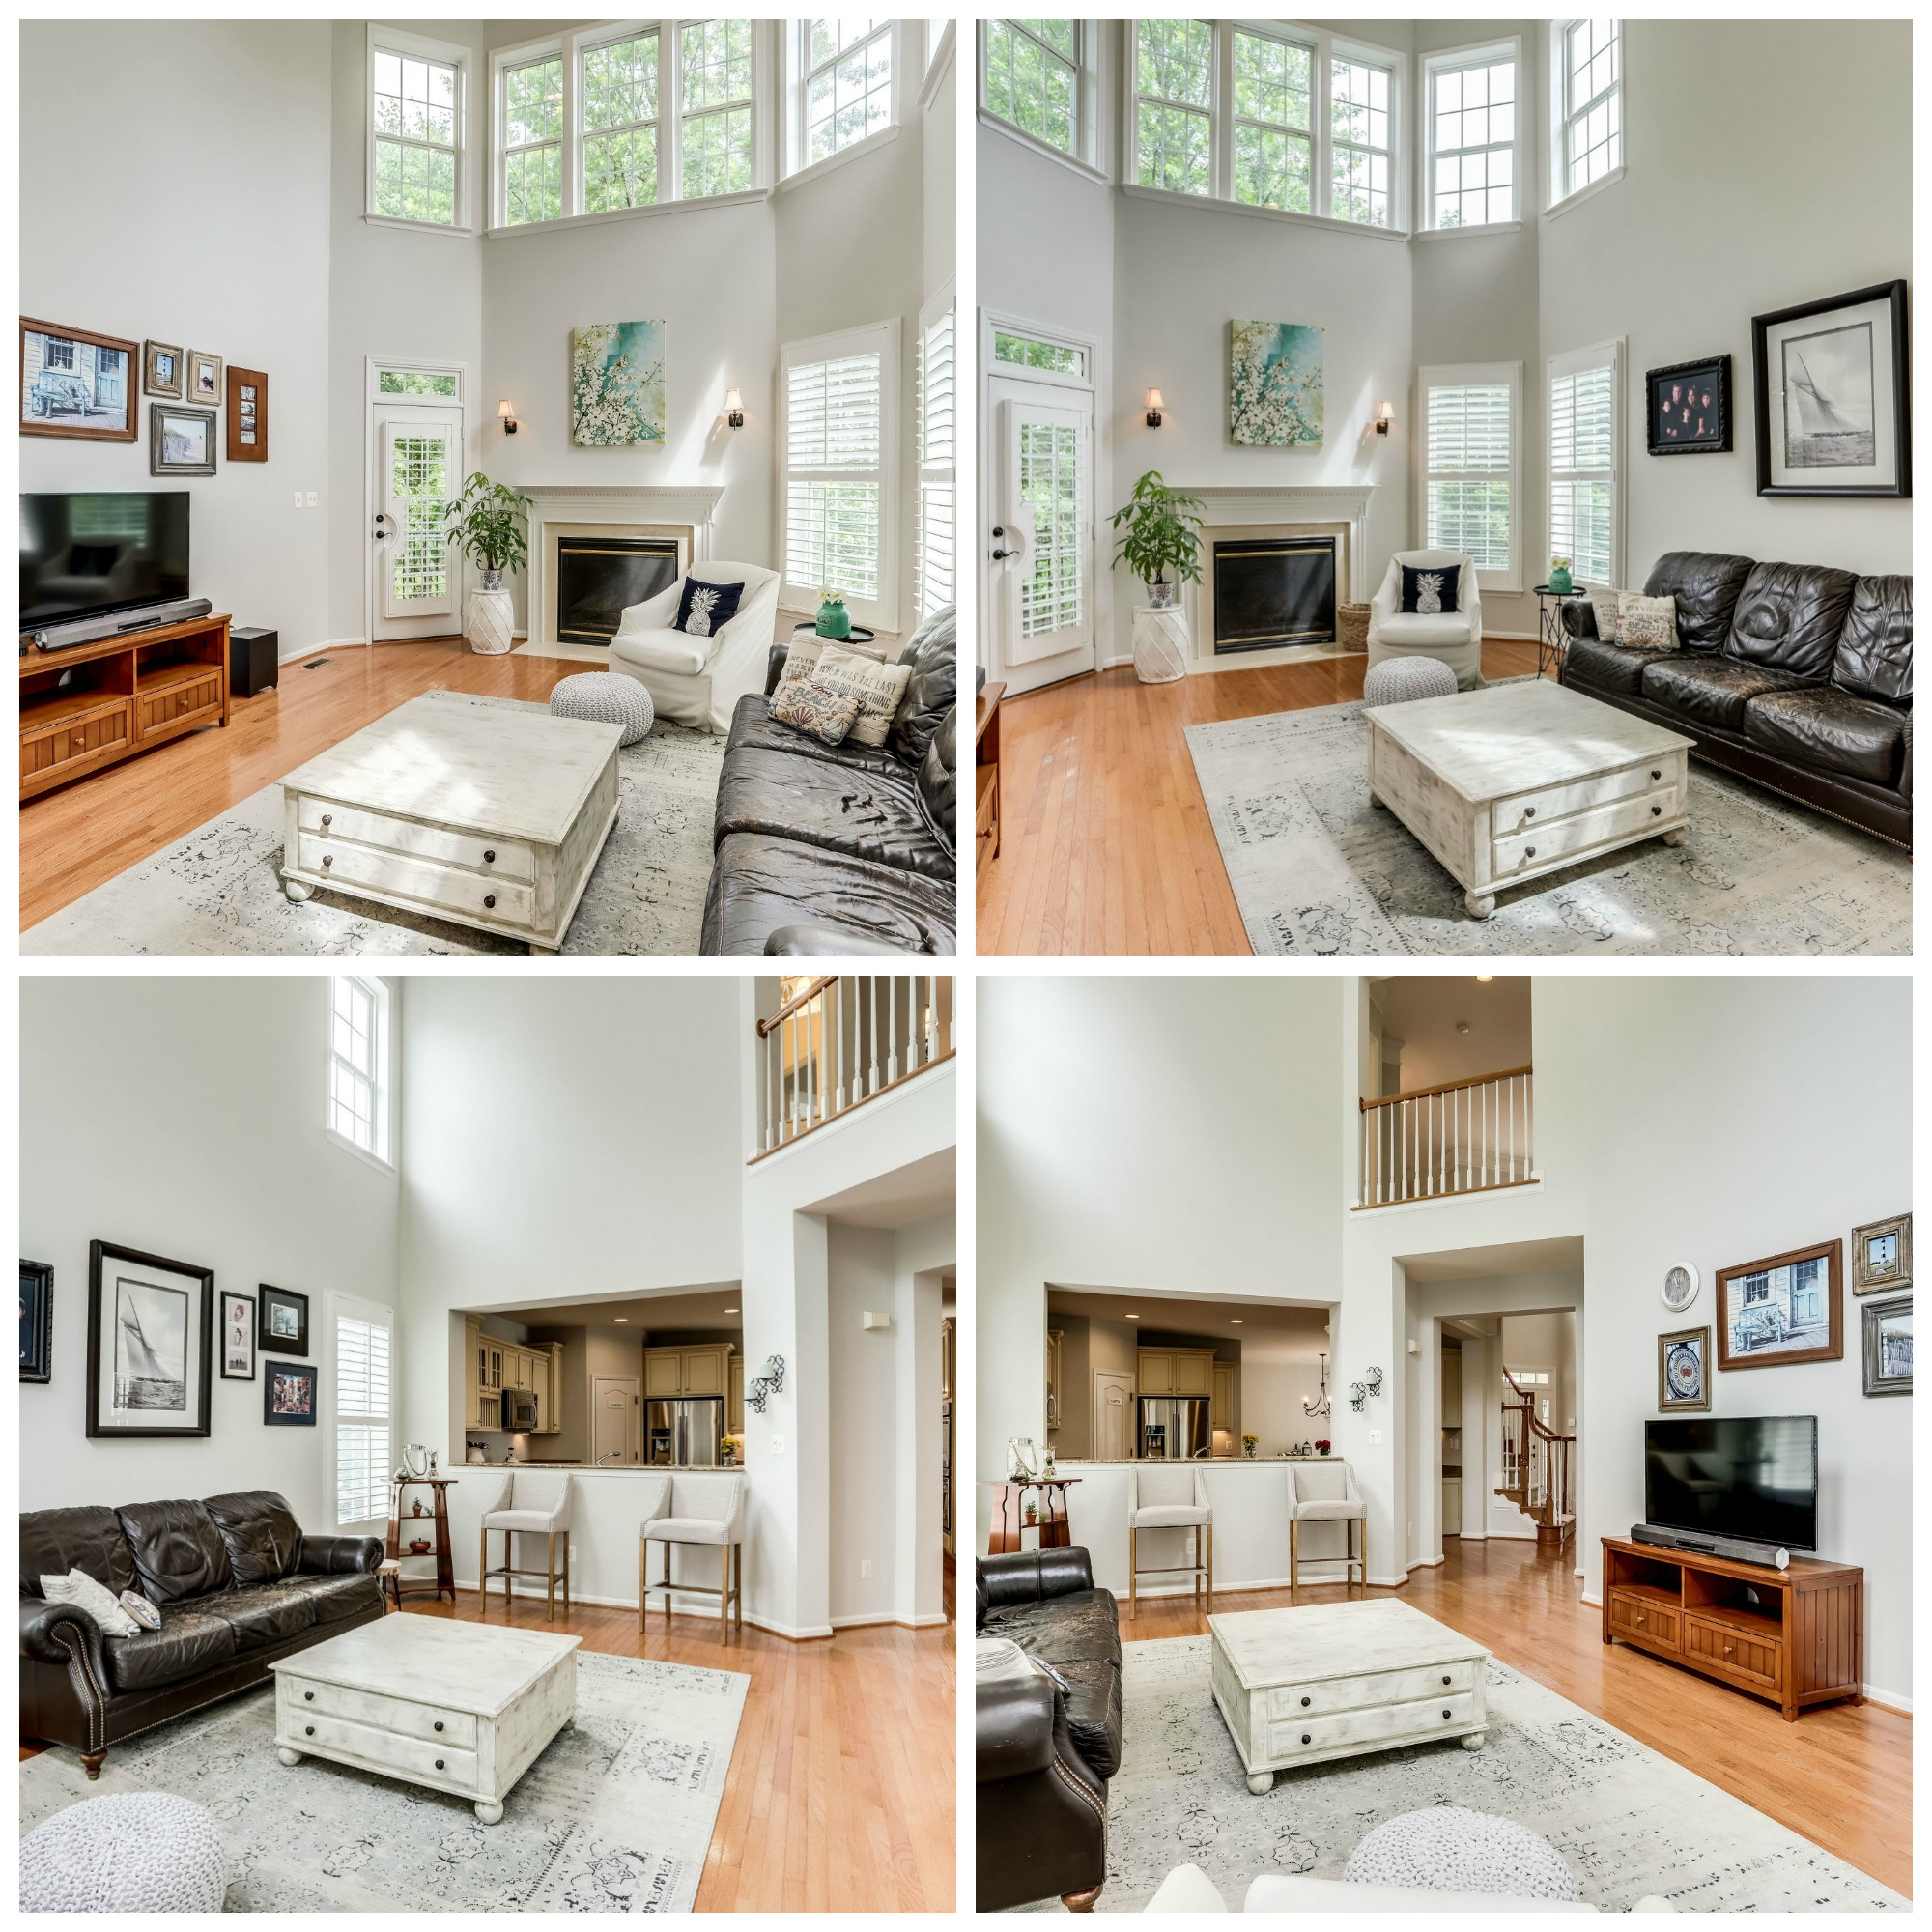 42914 Park Brooke Ct, Broadlands- Family Room